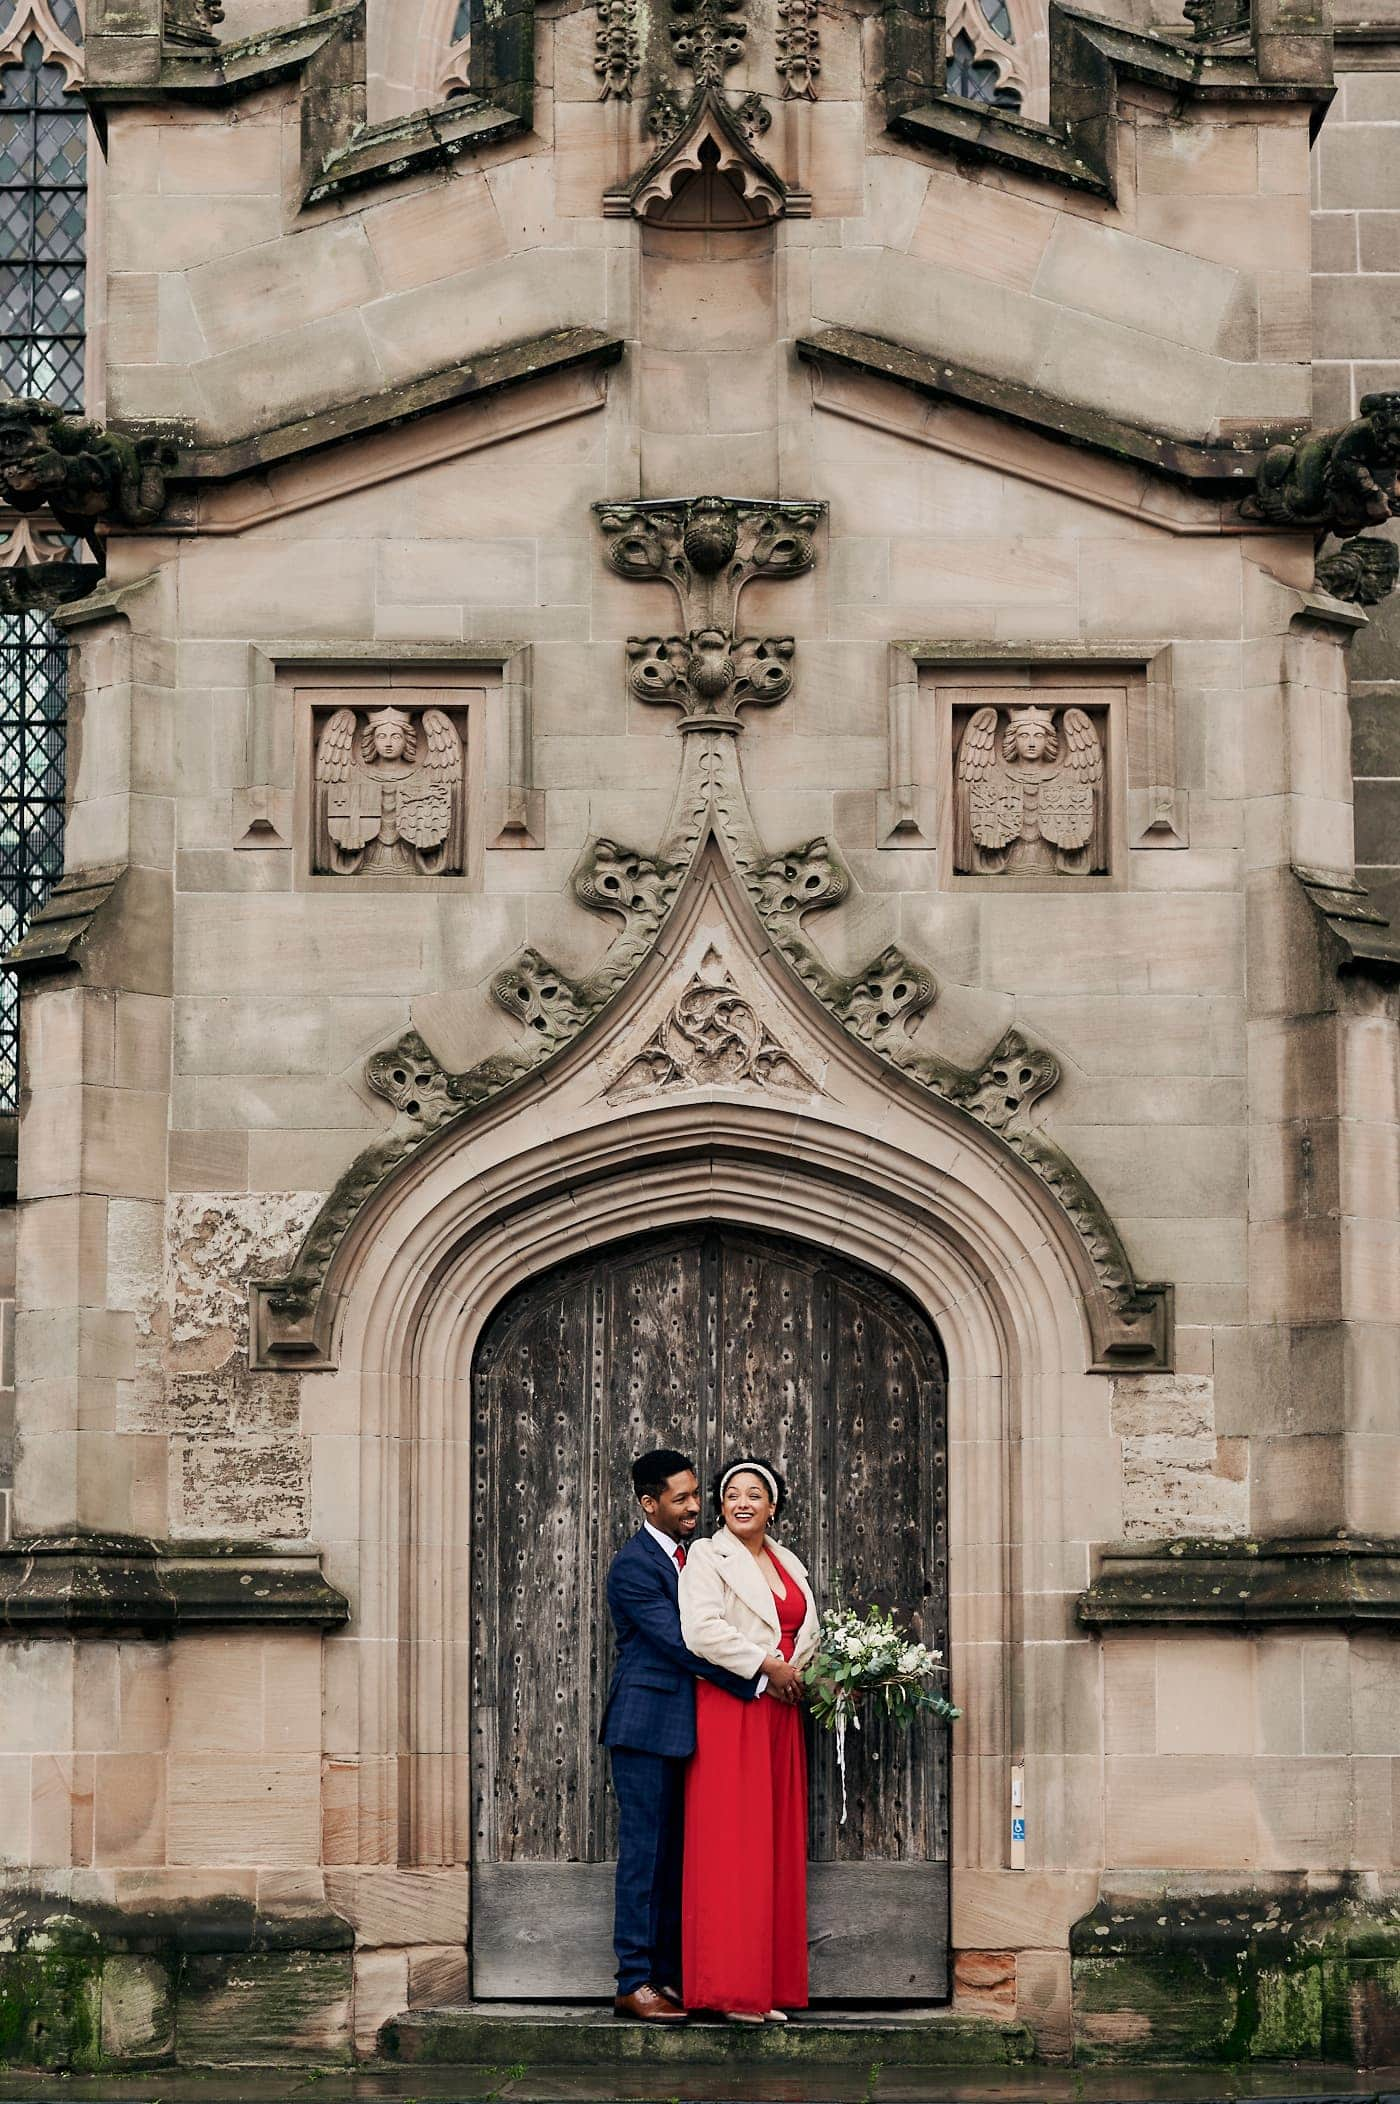 newly married couple in doorway of church in Stratford-upon-Avon